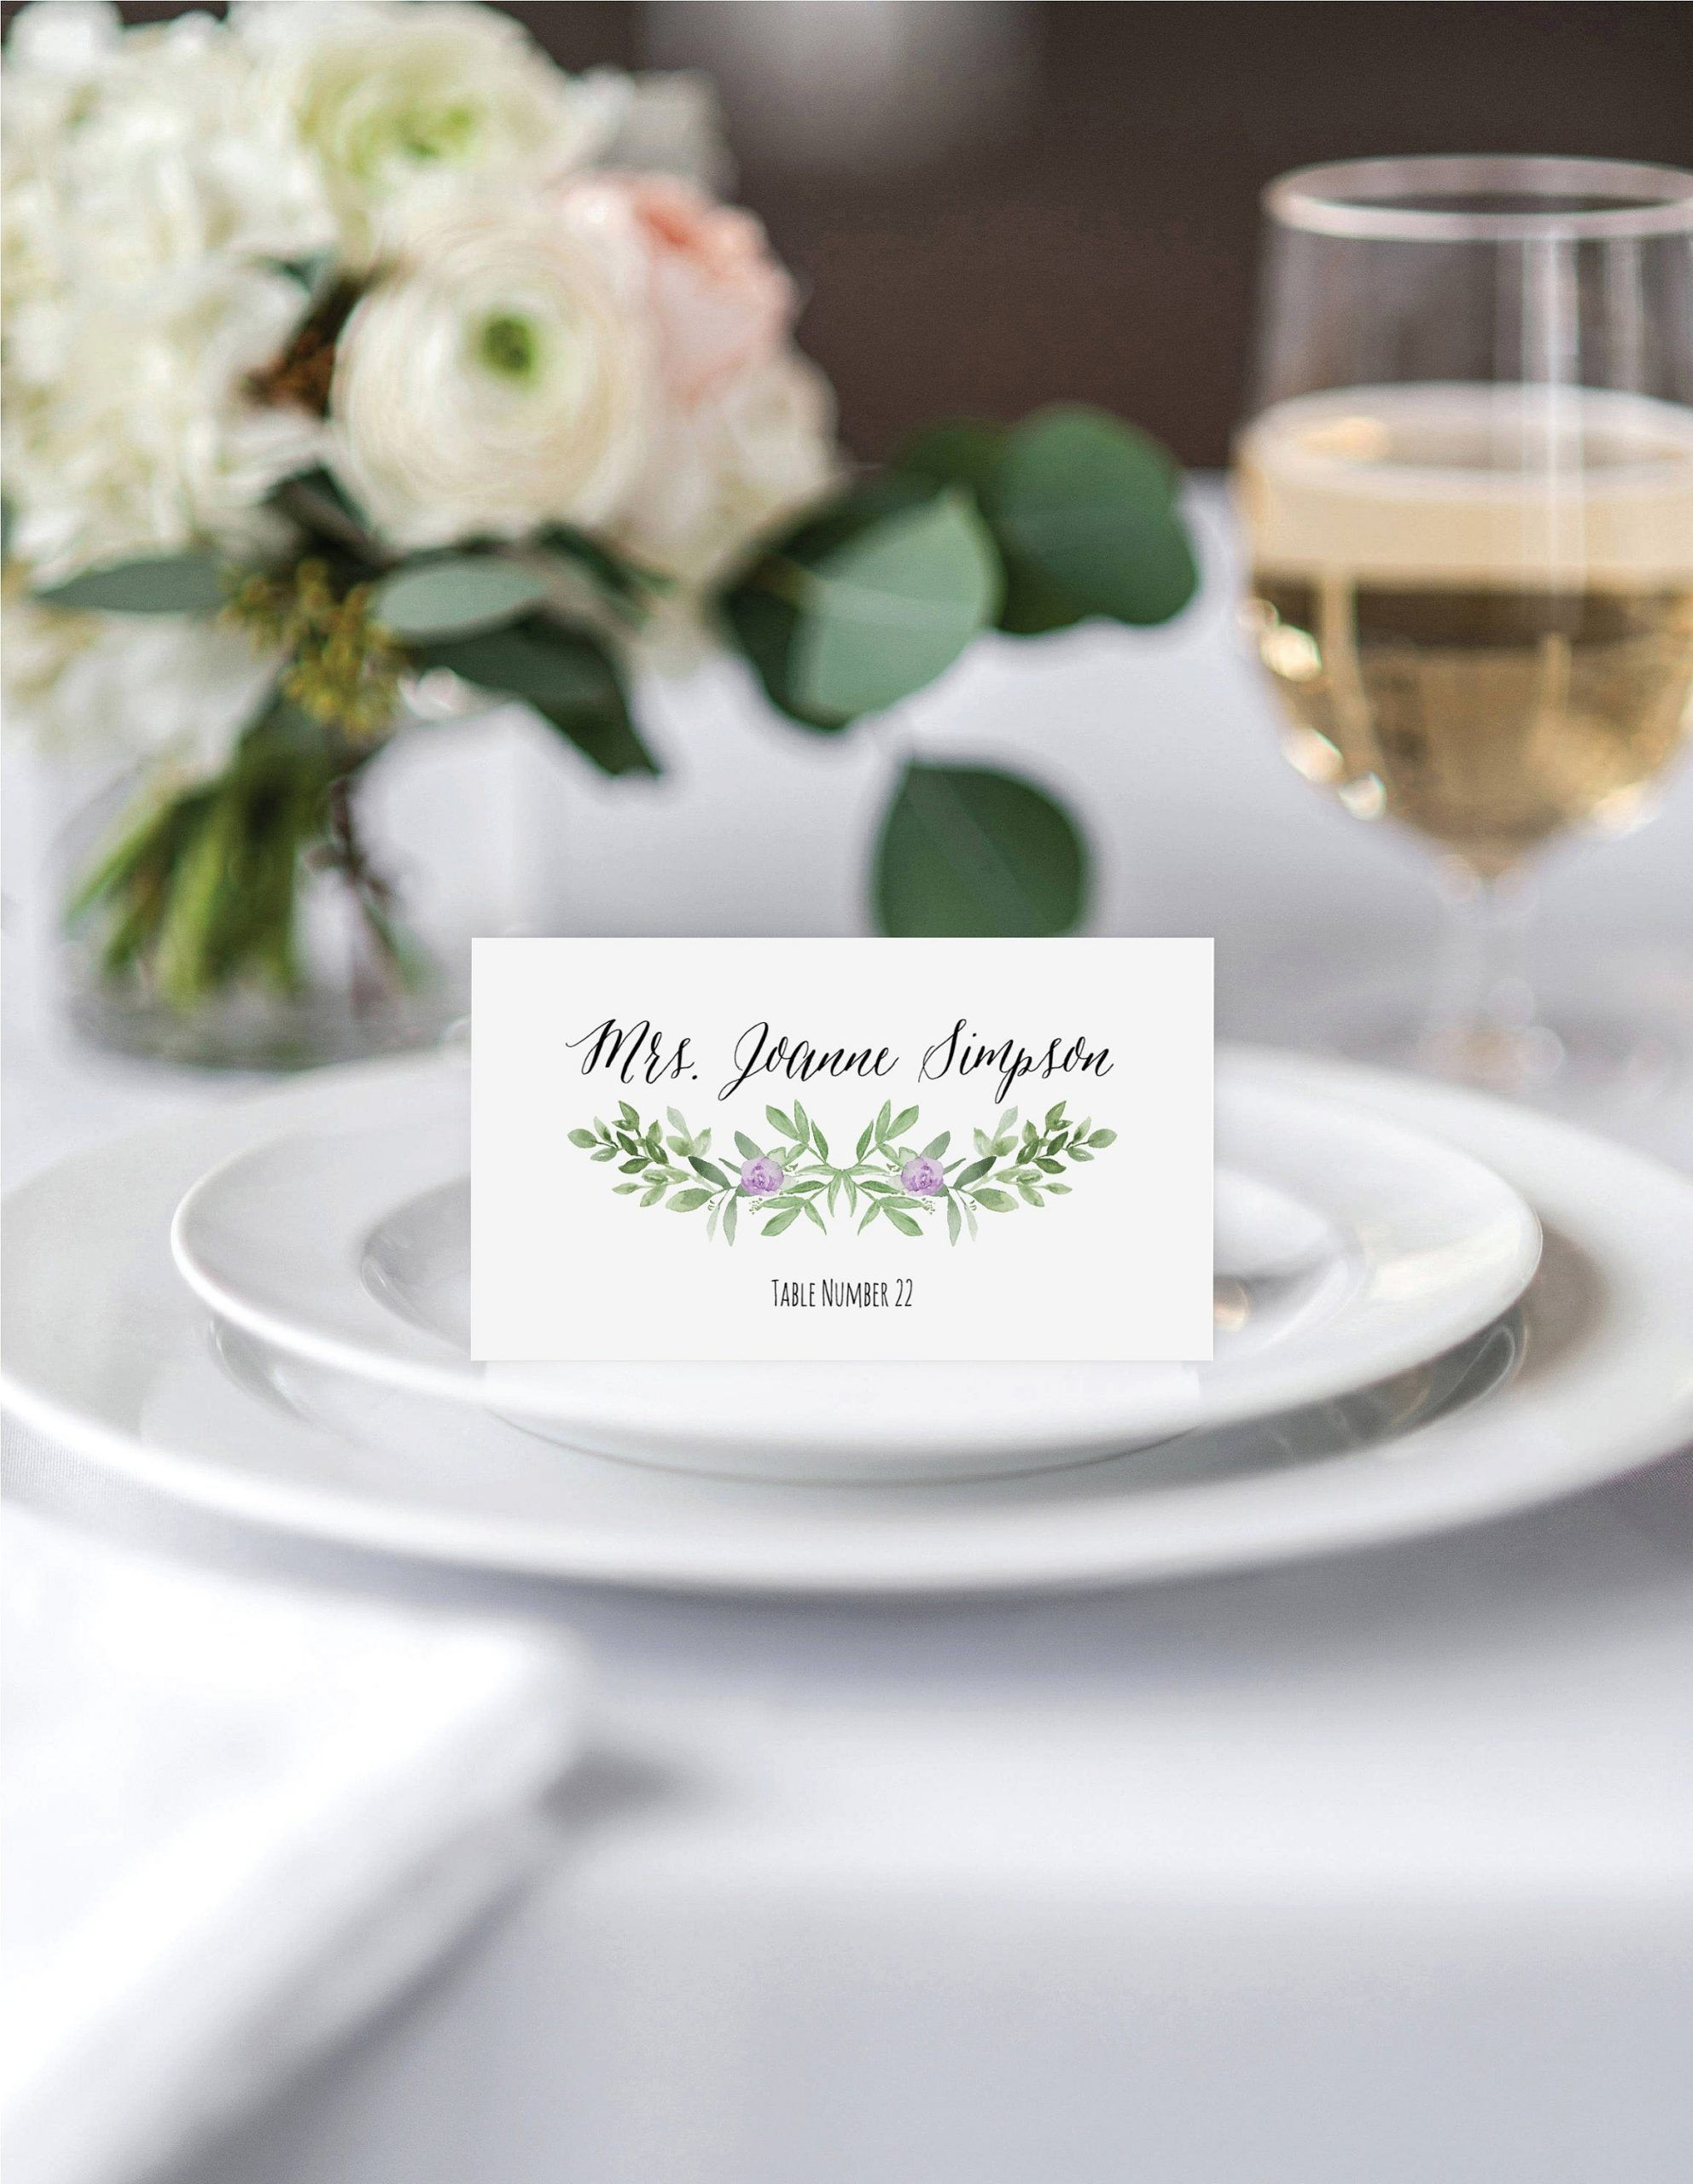 Avery Place Card Template In 2021 Printable Place Cards Wedding Wedding Place Card Templates Printable Place Cards